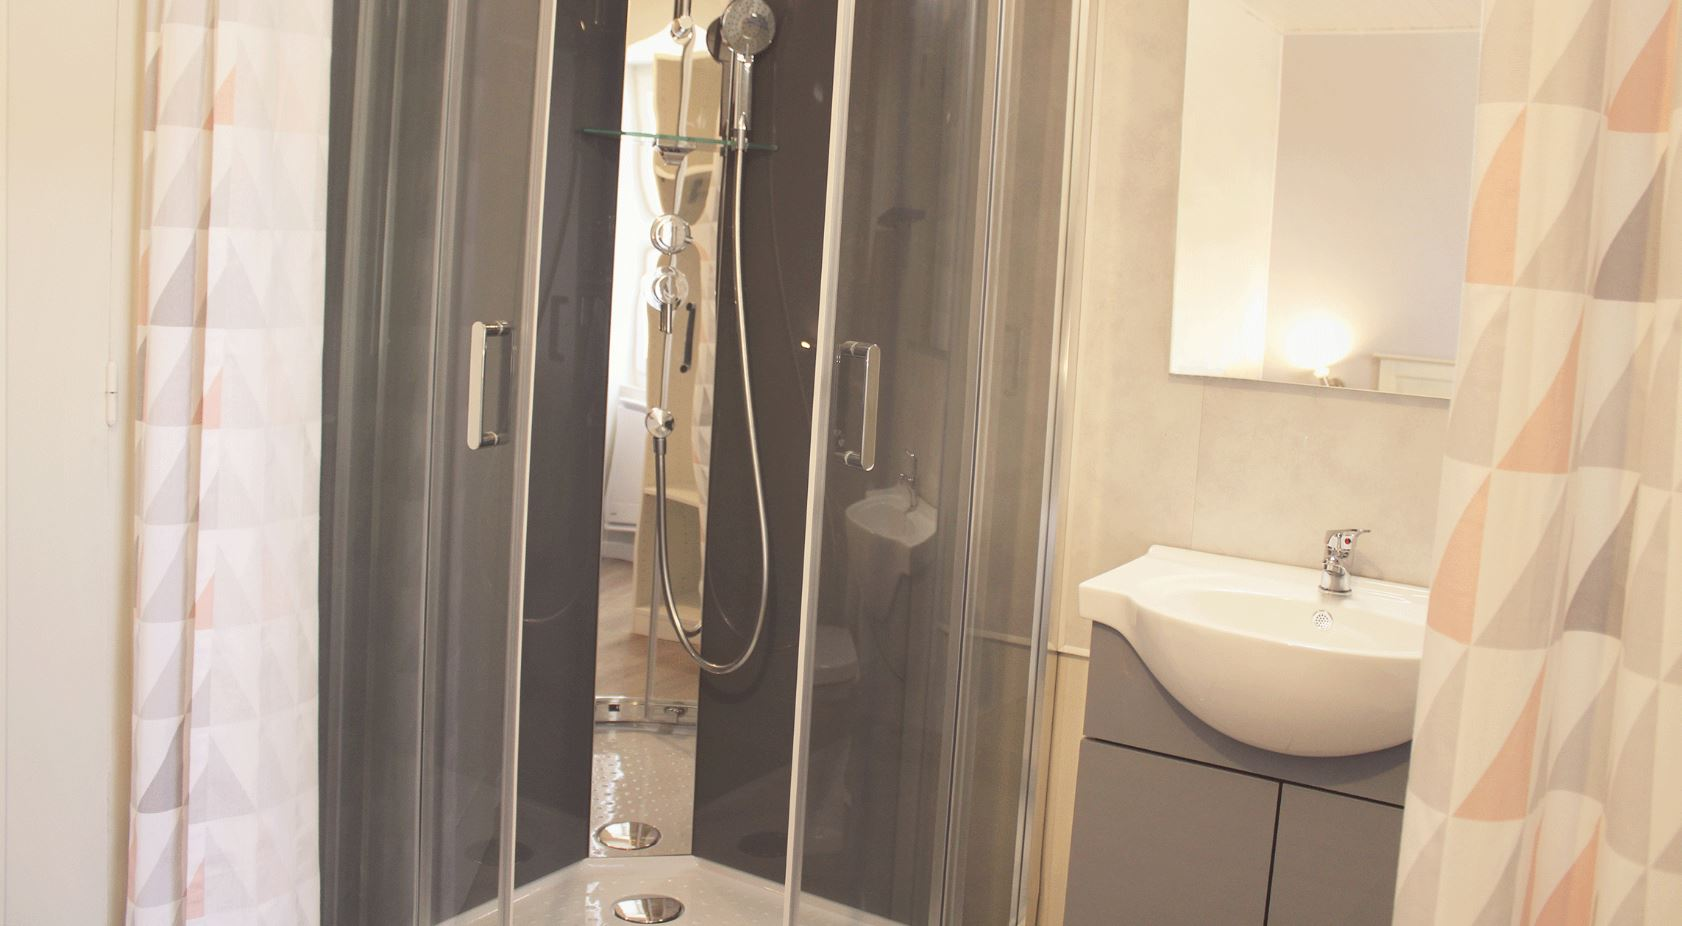 Shower room, wash basin and toilet